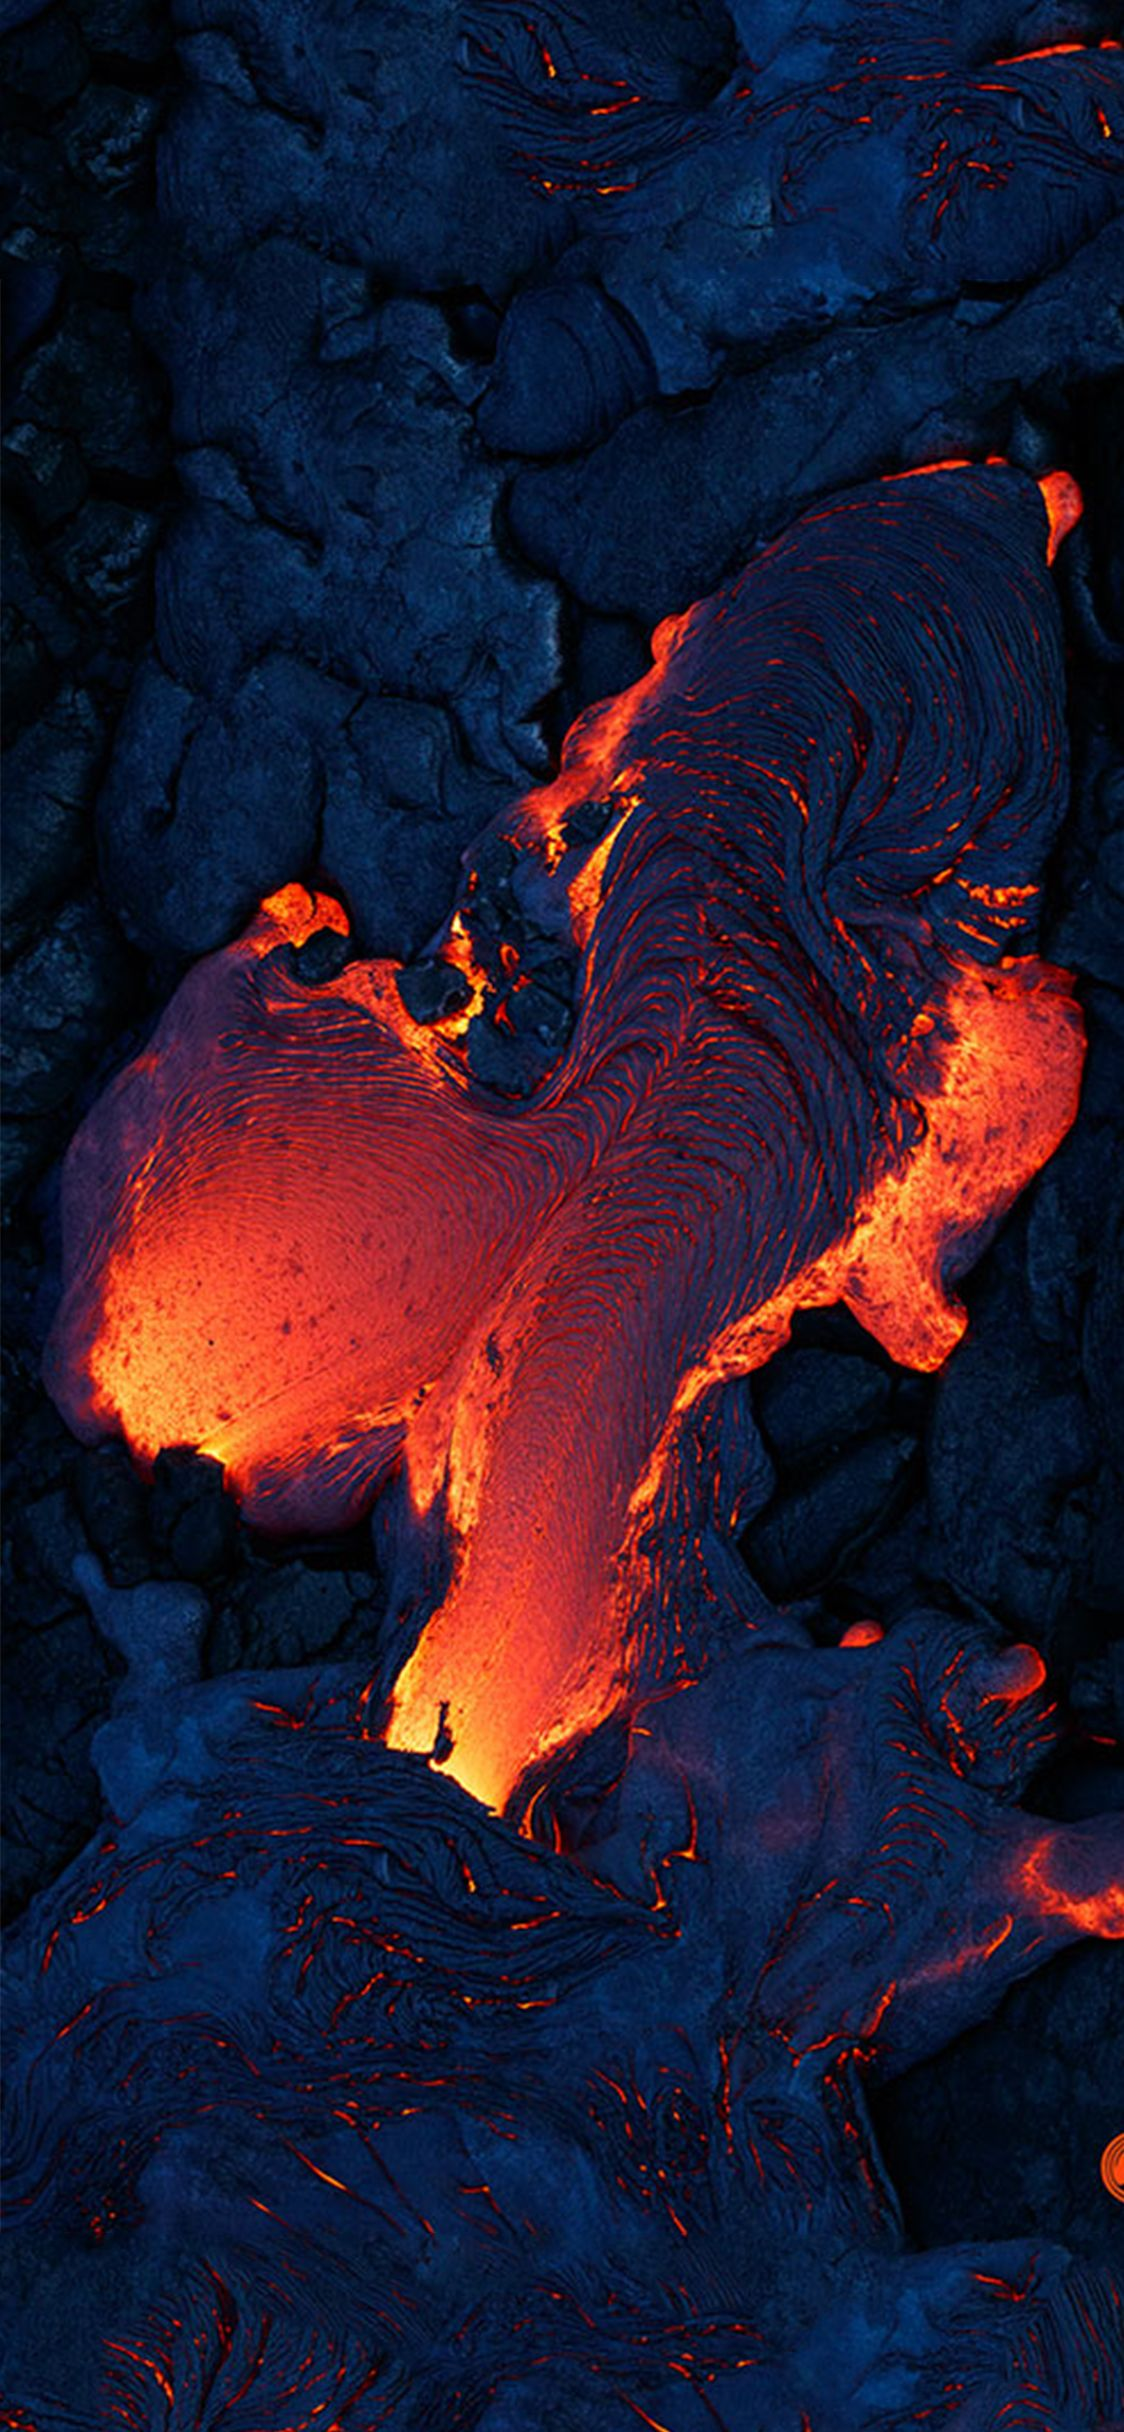 Best volcano wallpaper for iPhone x iOSwall inspration in 2019 1124x2432